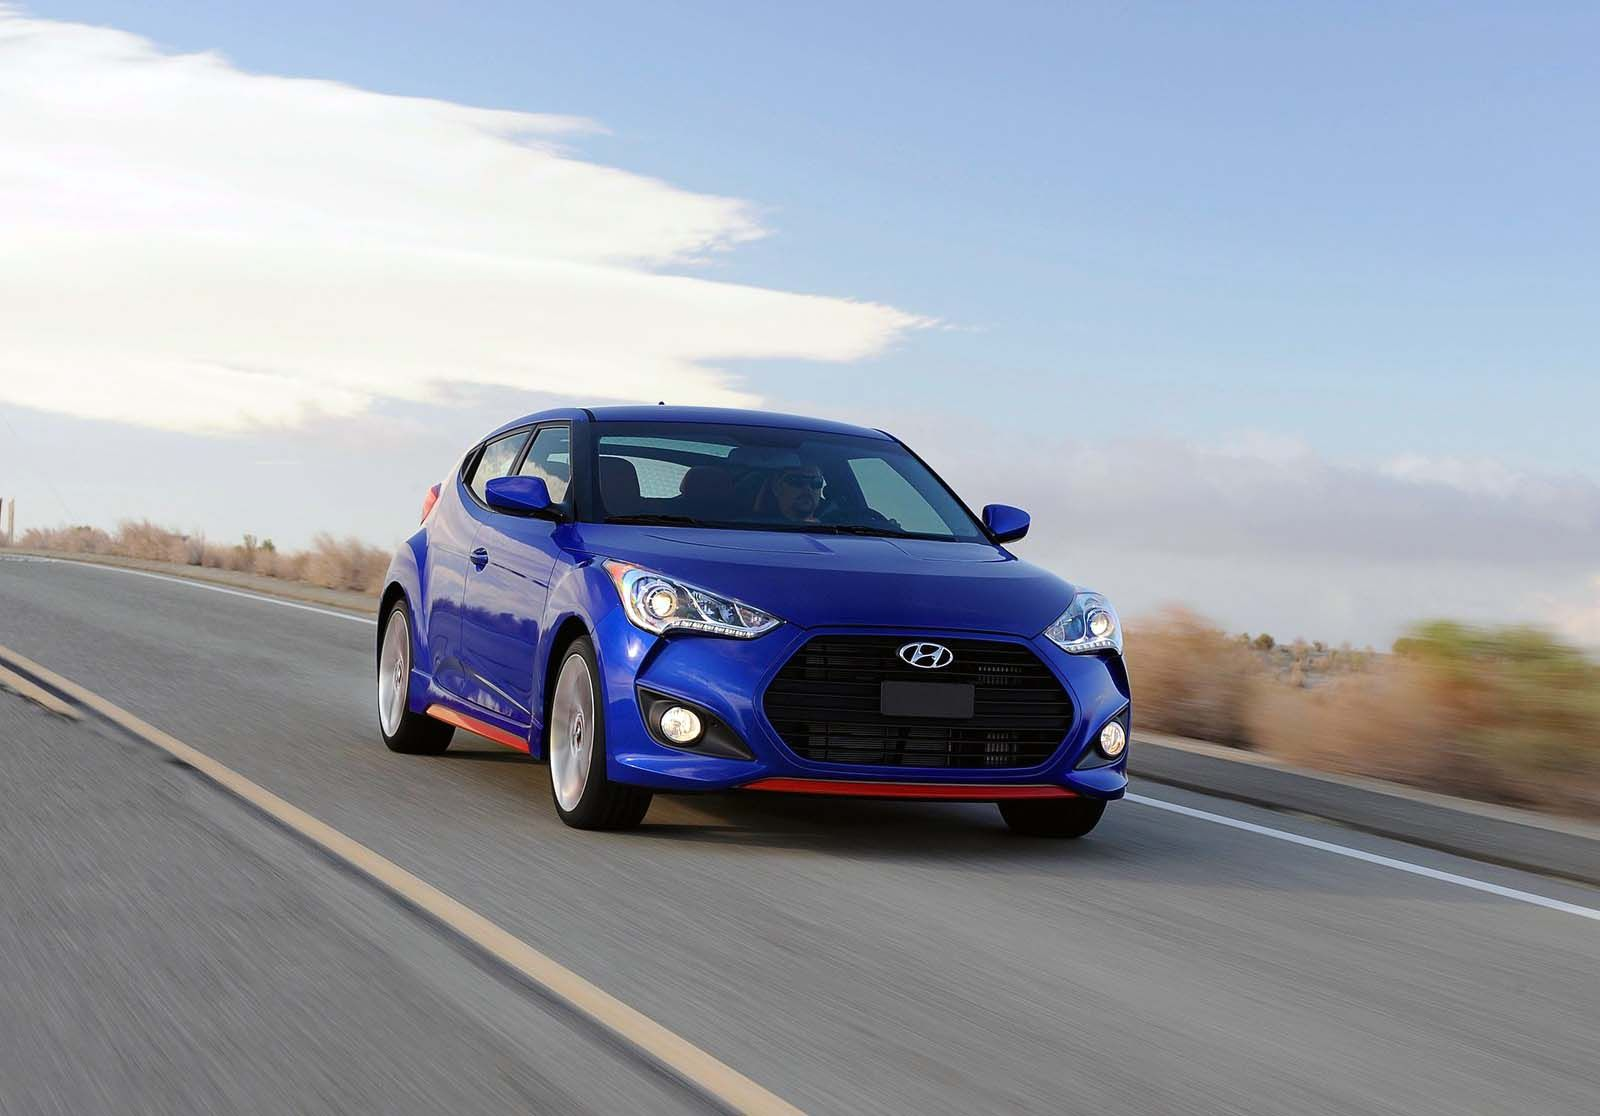 2014 Hyundai Veloster Turbo RSpec Future cars model